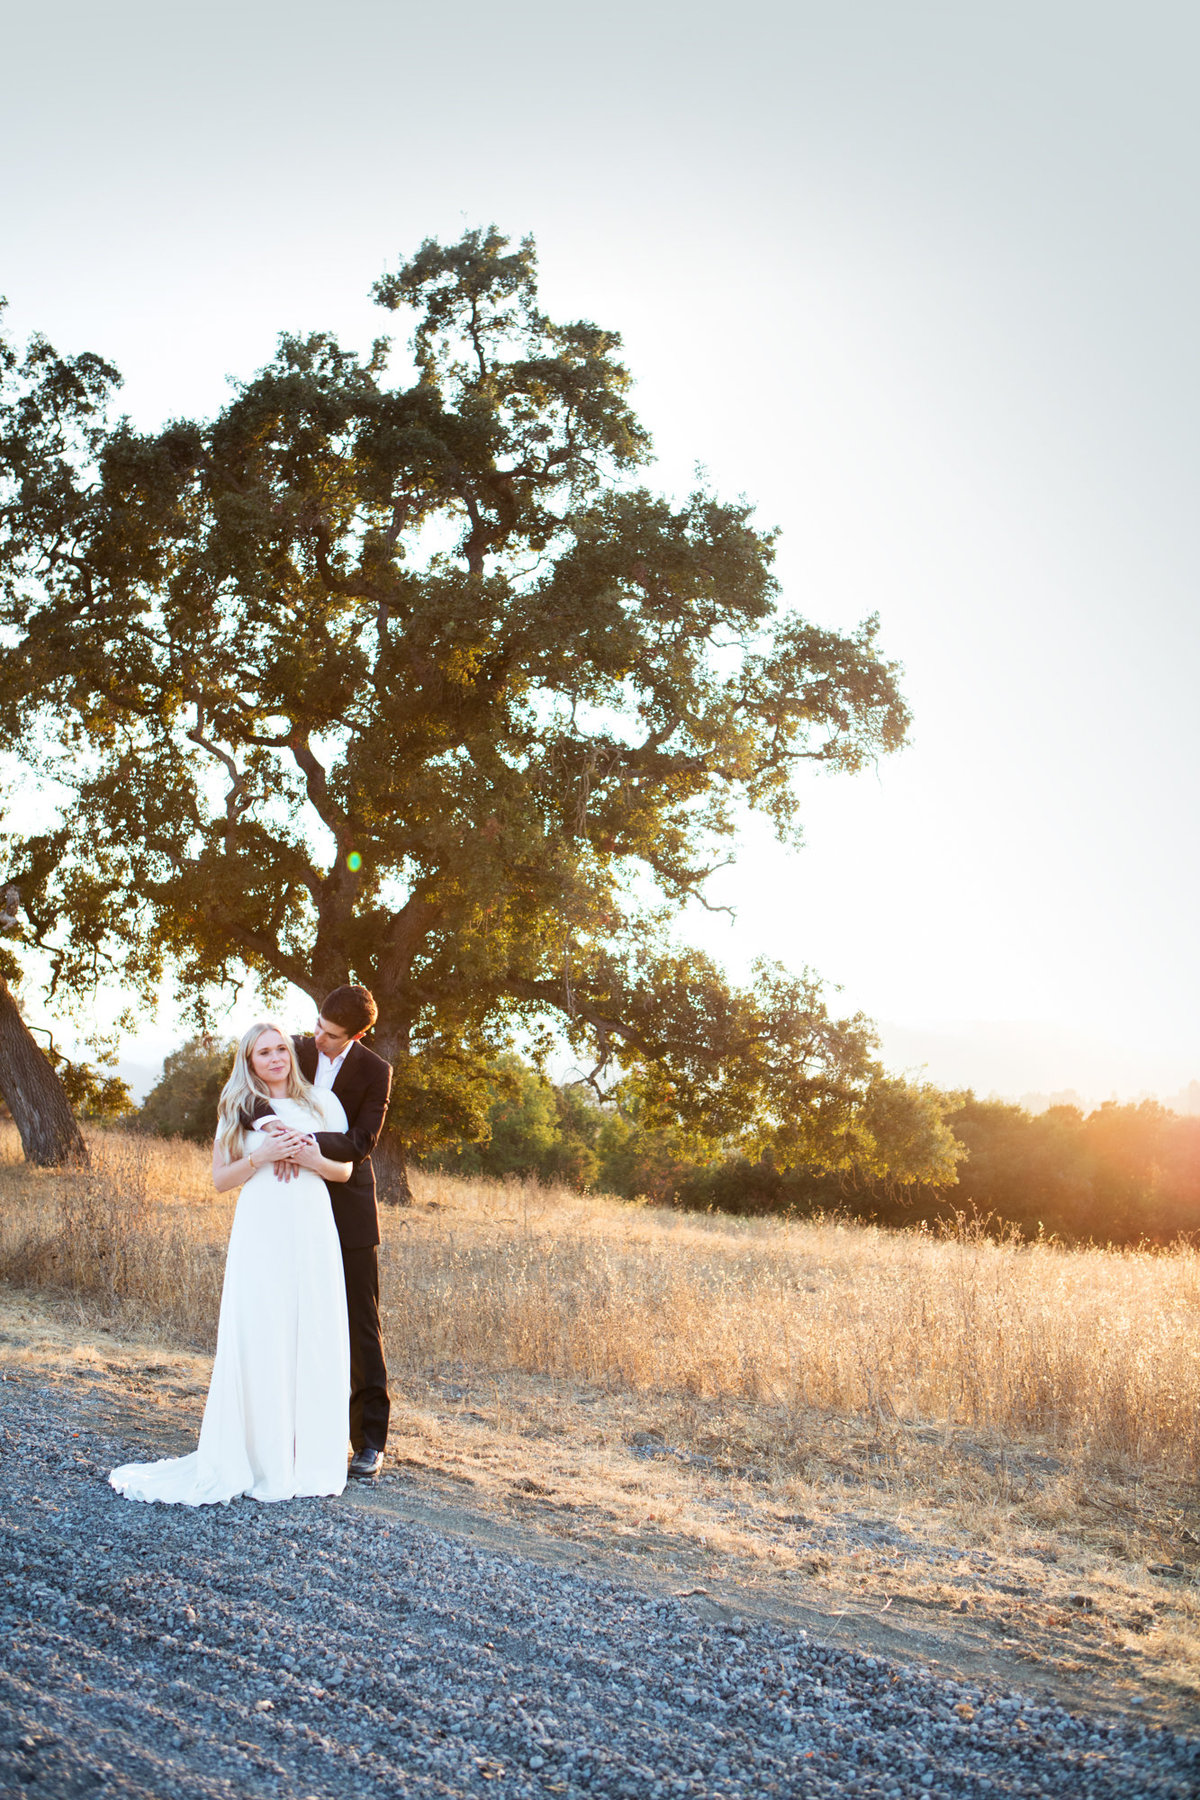 Sunset Wedding Photos at Arastradero Park Palo Alto